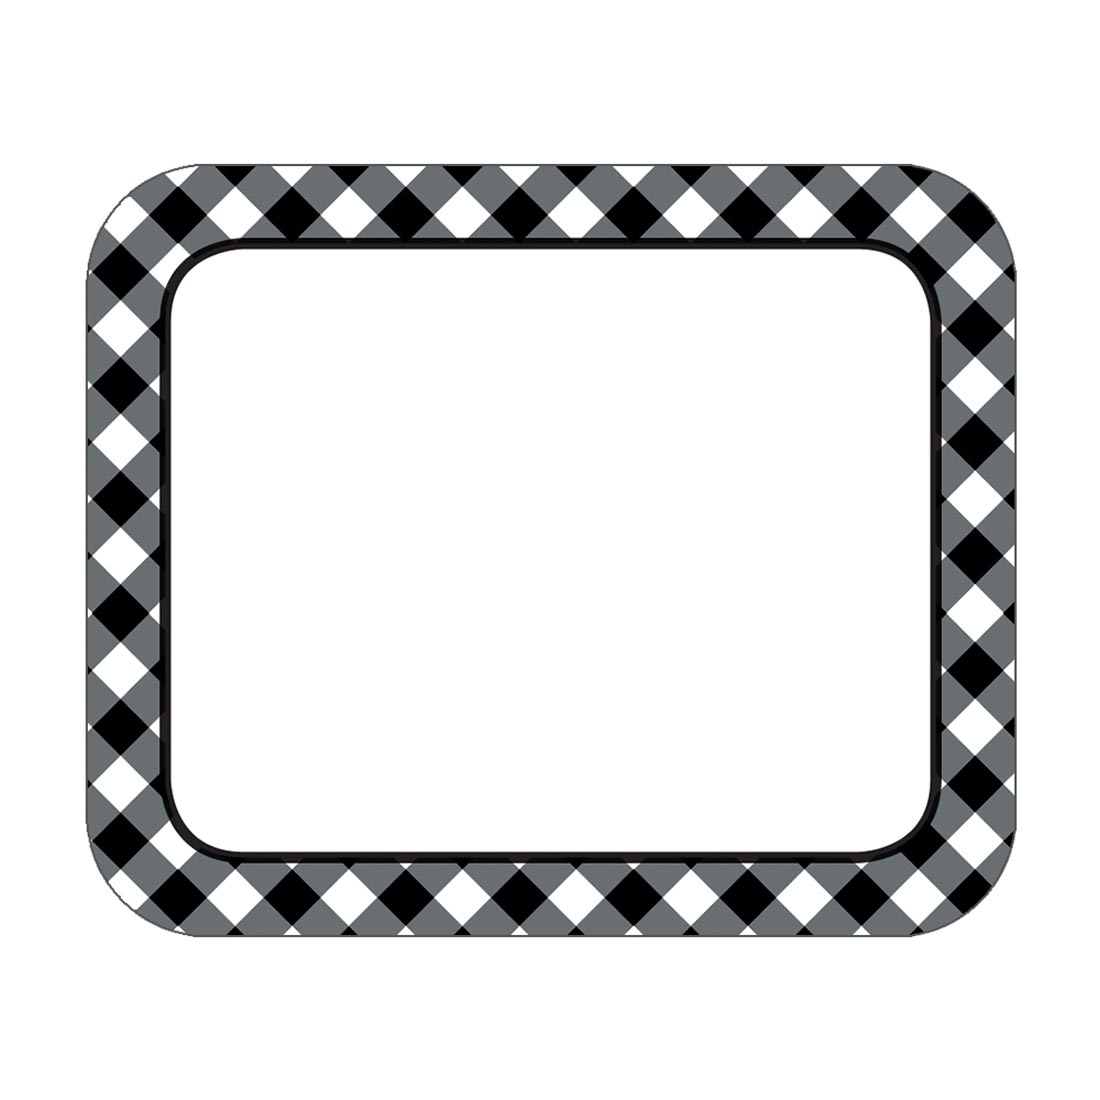 Black and white clipart nametag dan graphic Name Tags & Sticker Badges | United Art & Education graphic